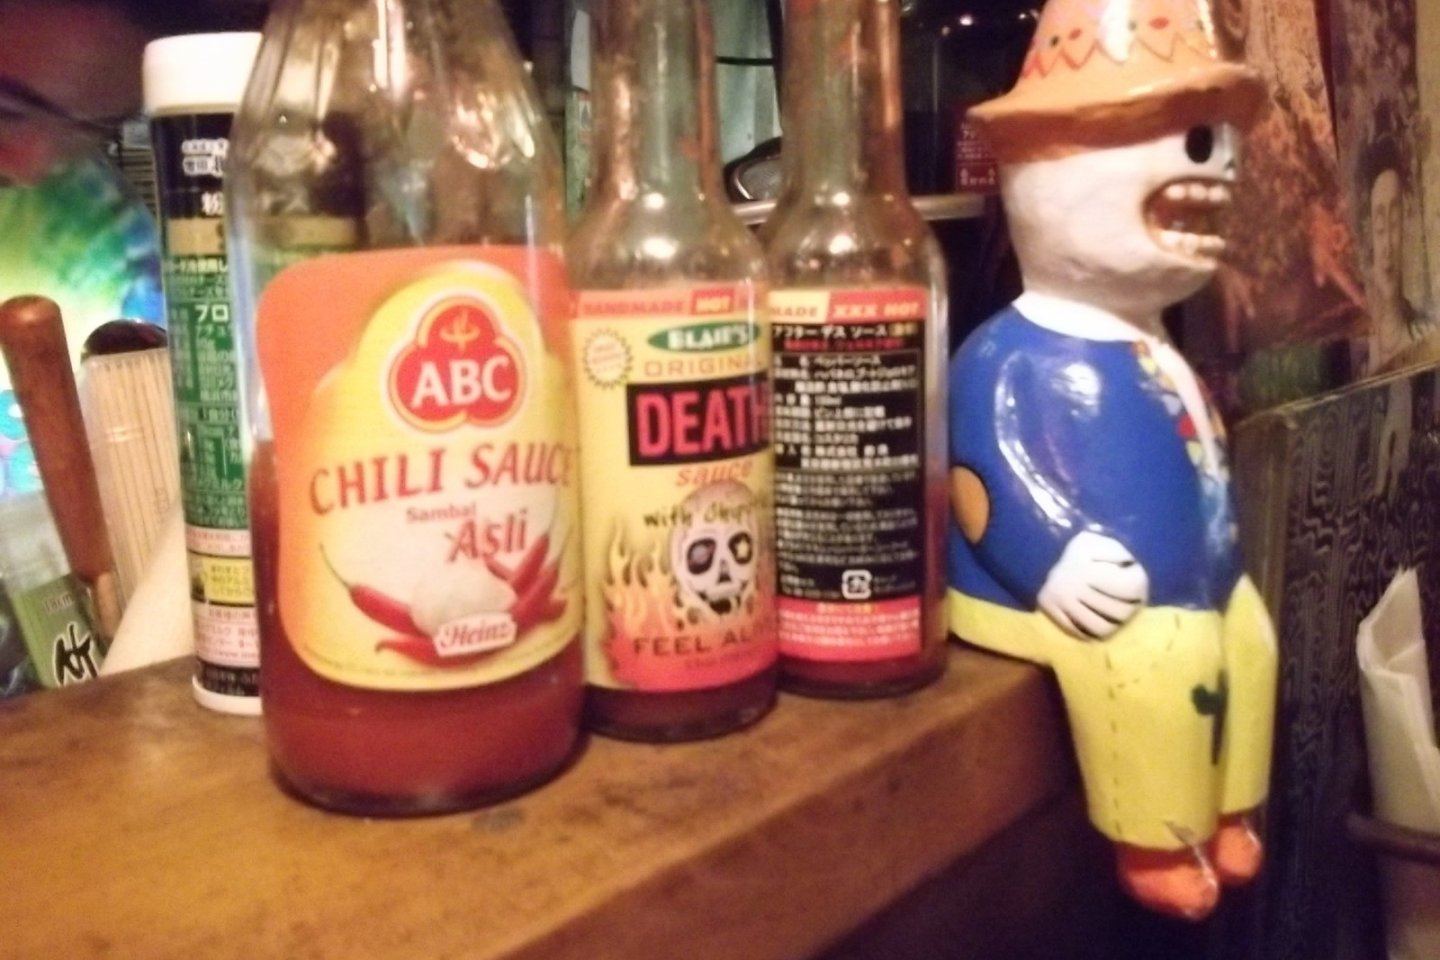 Chili, Death and another resident of the counter